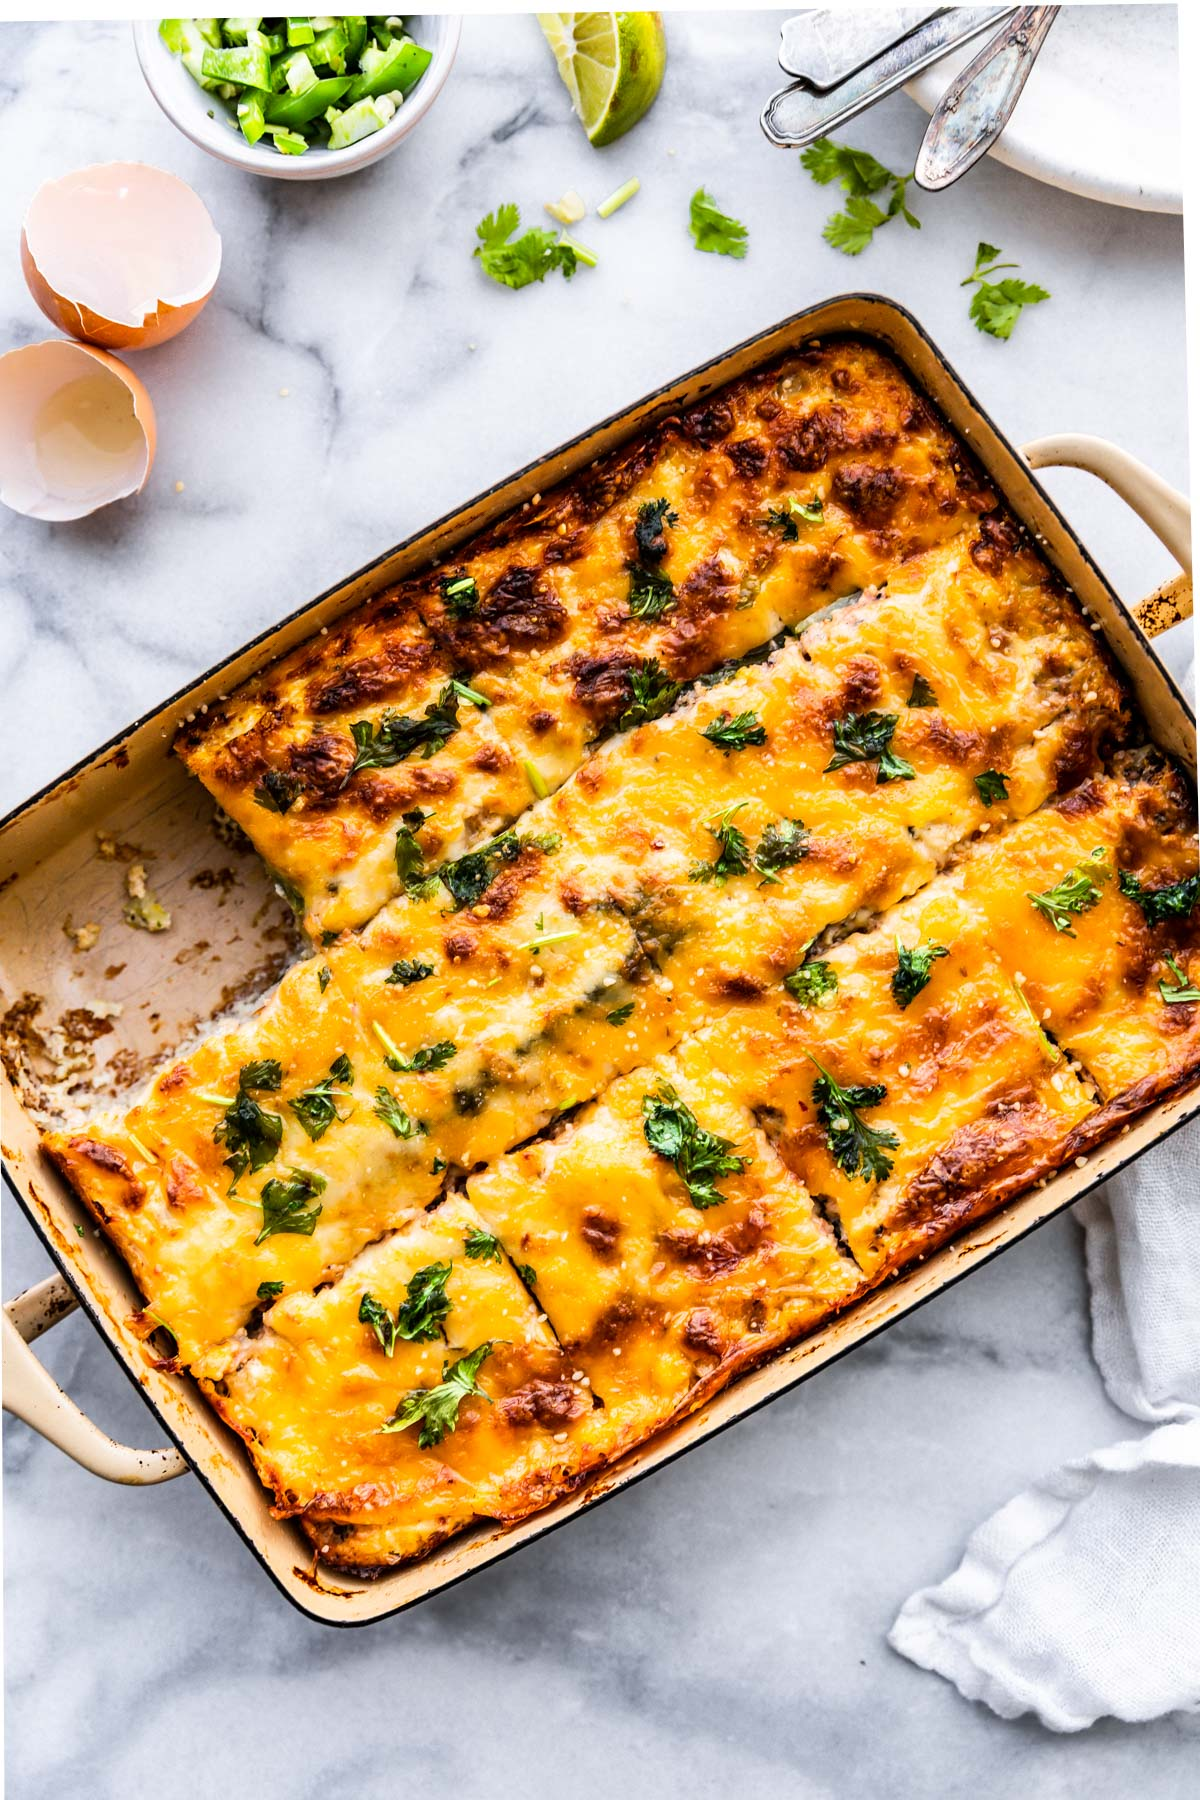 egg casserole cut and served on table